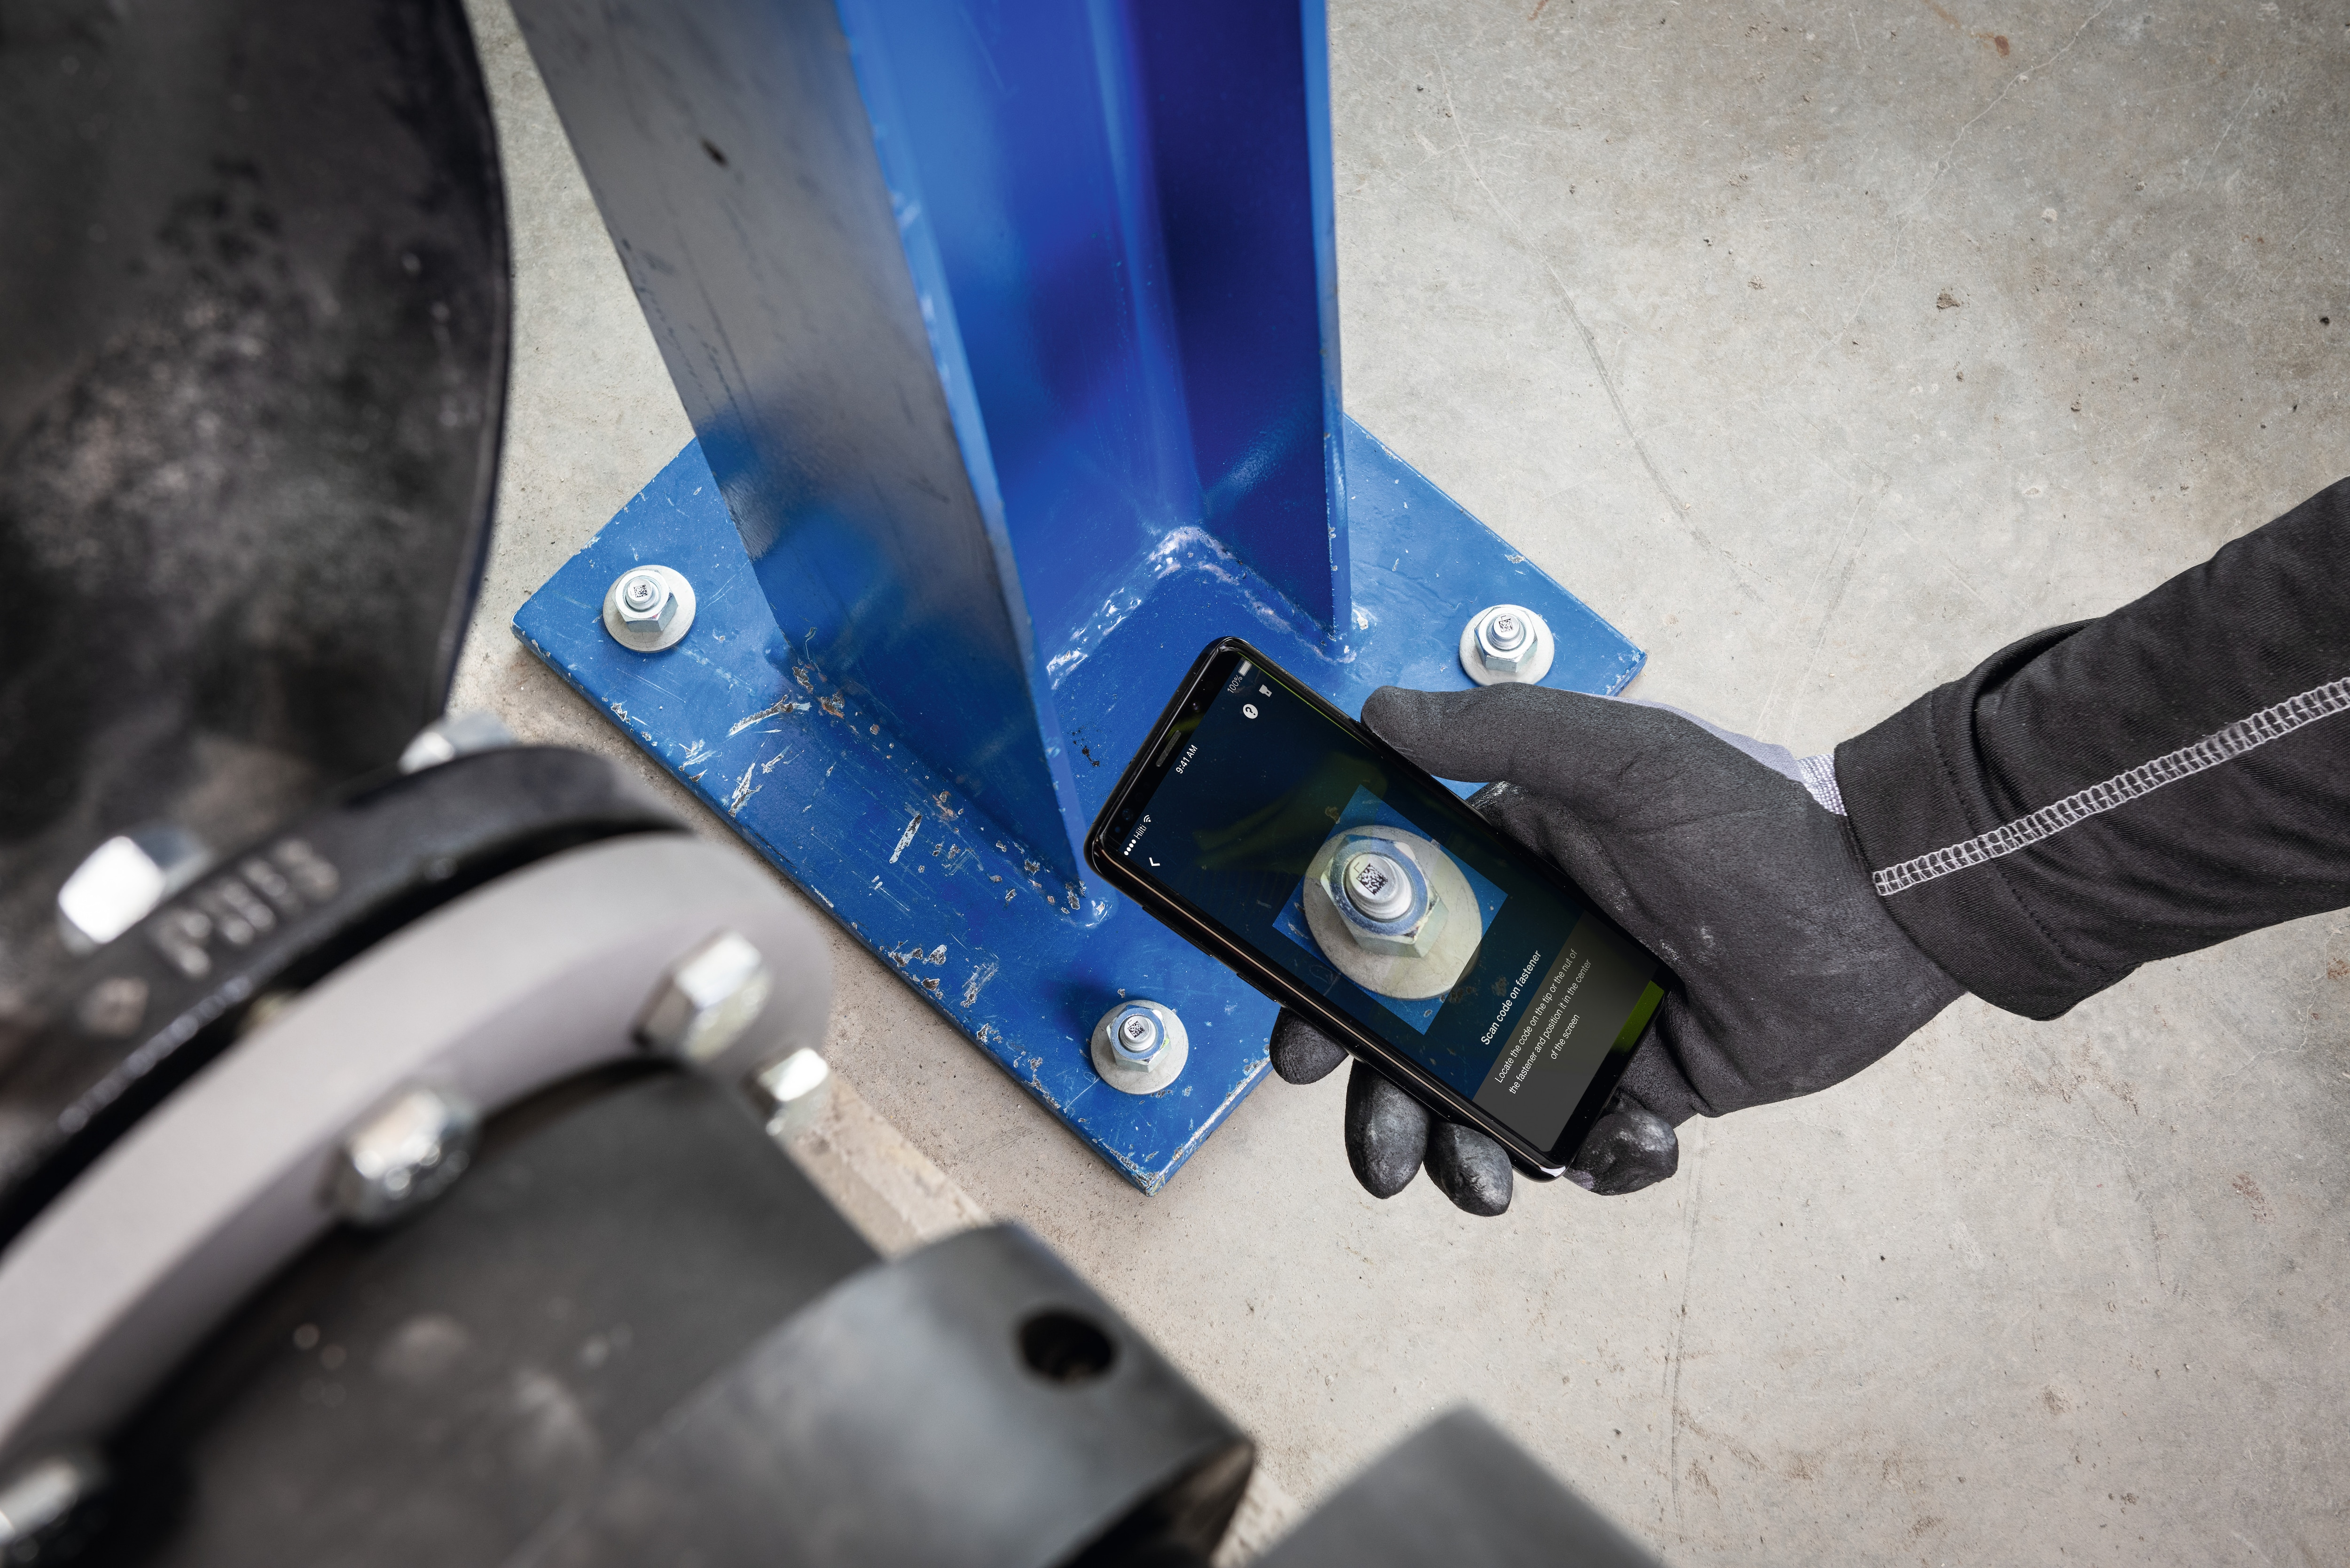 Worker scanning Hilti anchor with his smartphone